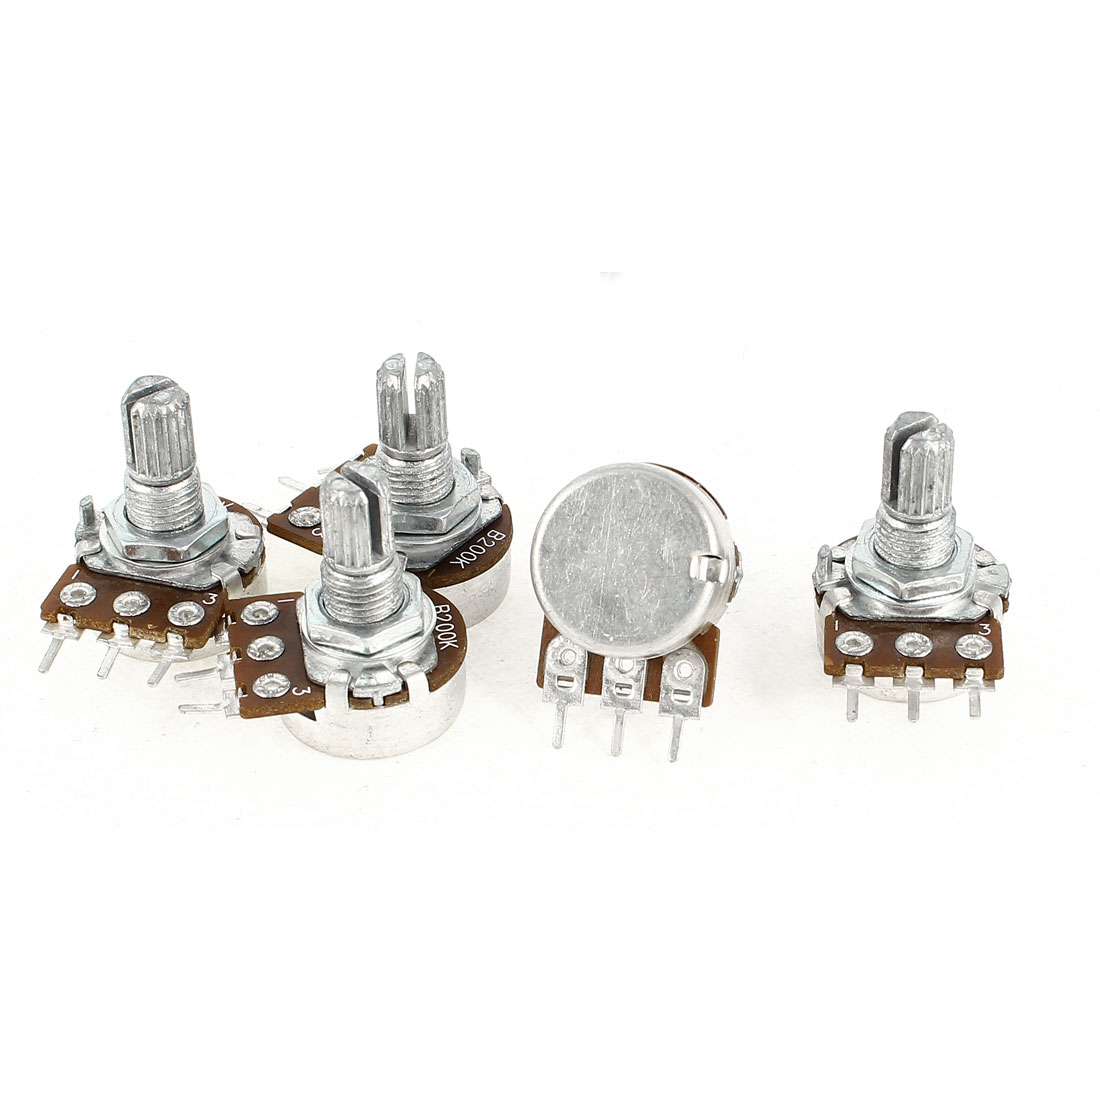 5 Pcs B200K 200K Ohm Metal Rotating Shaft 3 Terminals Rotary Single Linear Taper Potentiometers